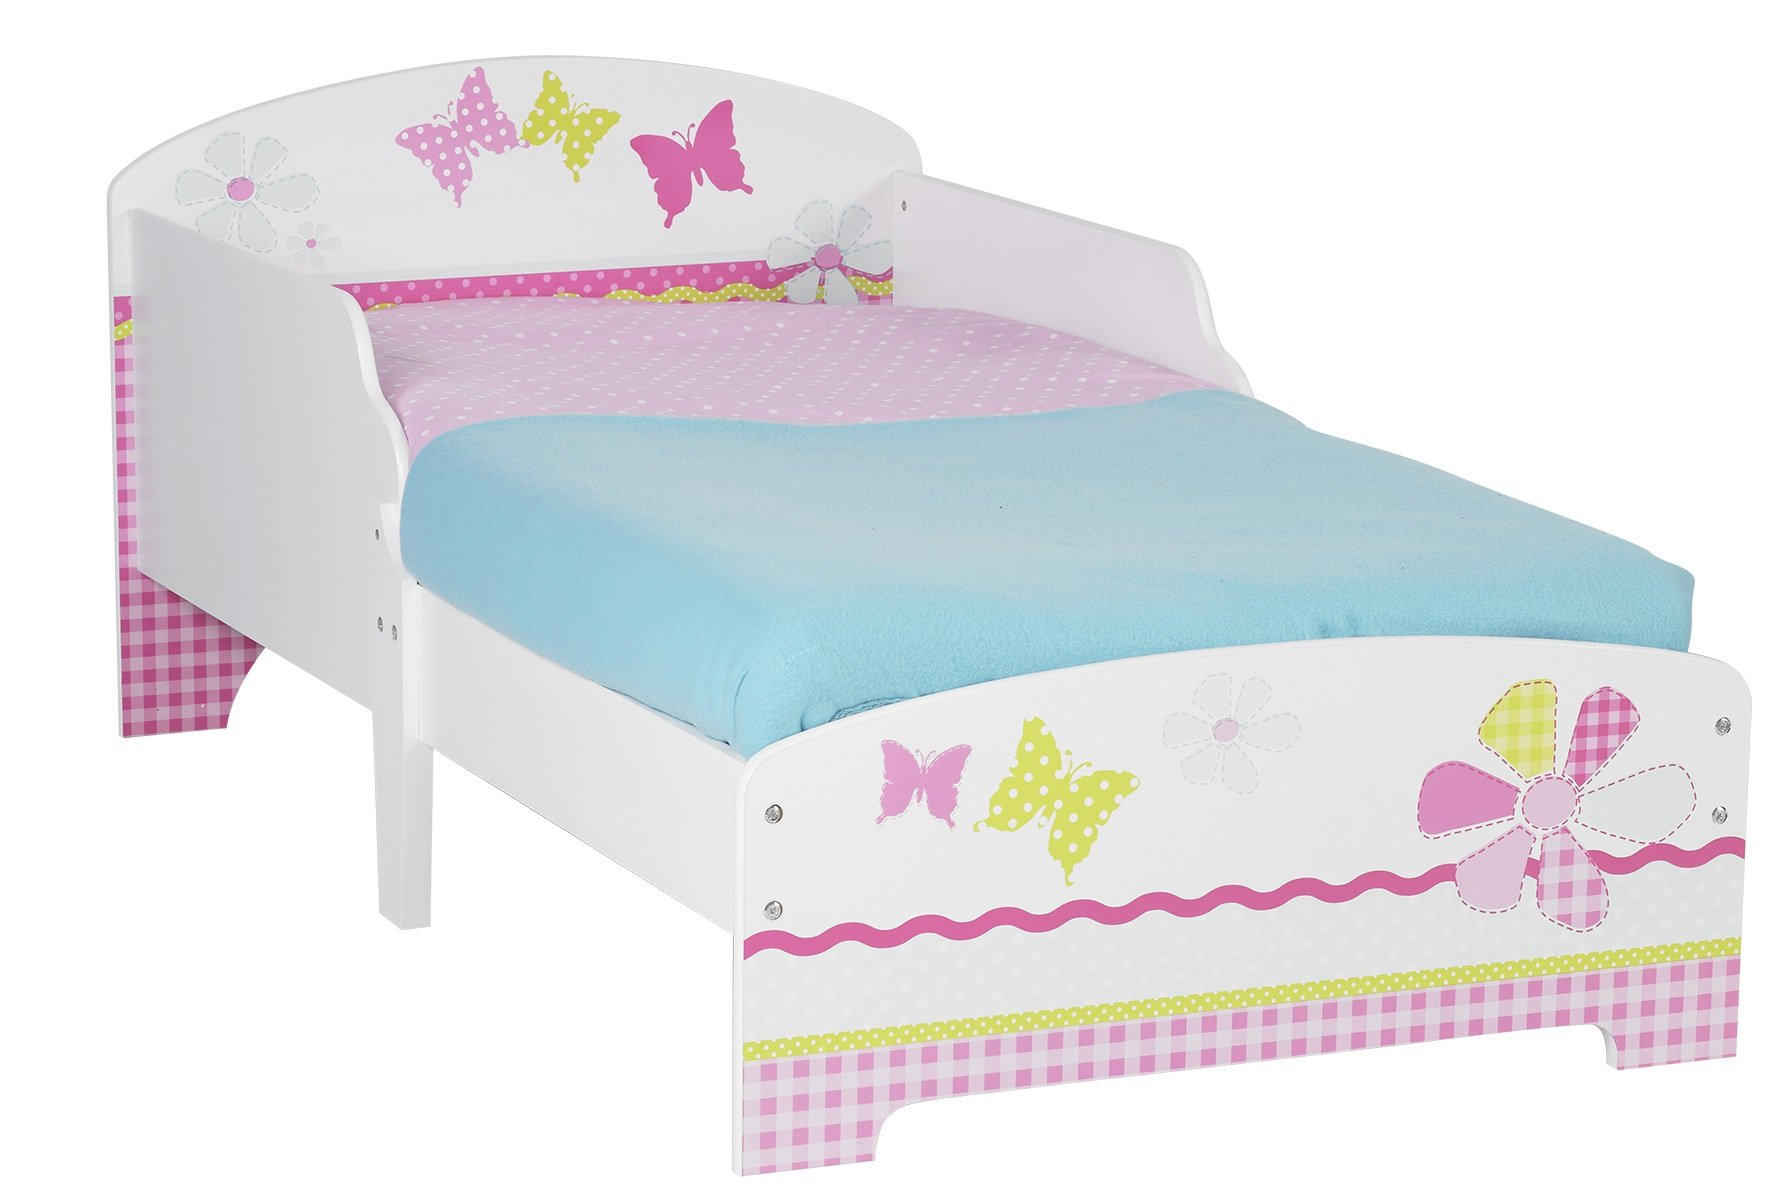 Butterflies and Flowers Patchwork Kids Toddler Bed by HelloHome  Ideal transition from cot to bed - make the move to her first big kids' bed magical with this fun butterflies and flowers design toddler bed from HelloHome Takes cot bed size mattress - 140cm (l) x 70cm (w). Mattress not included. Assembled size (h)59, (w)77, (l)145cm Suitable for 18 months to 5 years this pink toddler bed is perfect for your little toddler 1